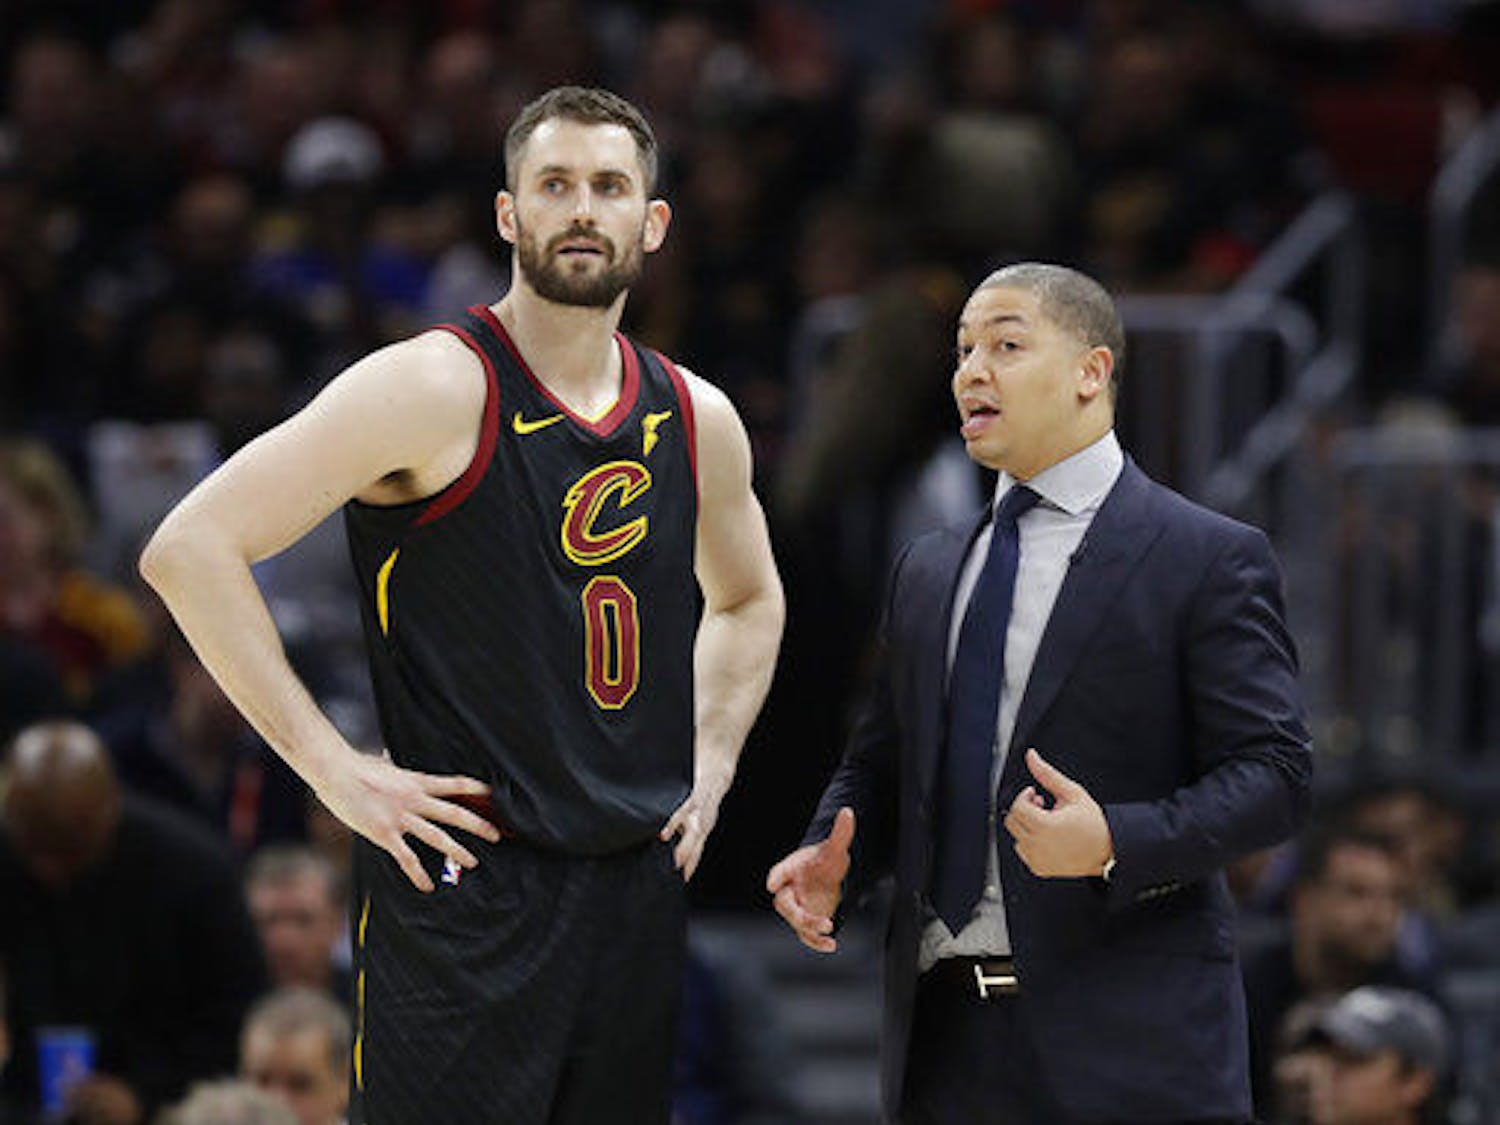 Cleveland Cavaliers forward Kevin Love just signed a four-year, $120 million extension with the team.